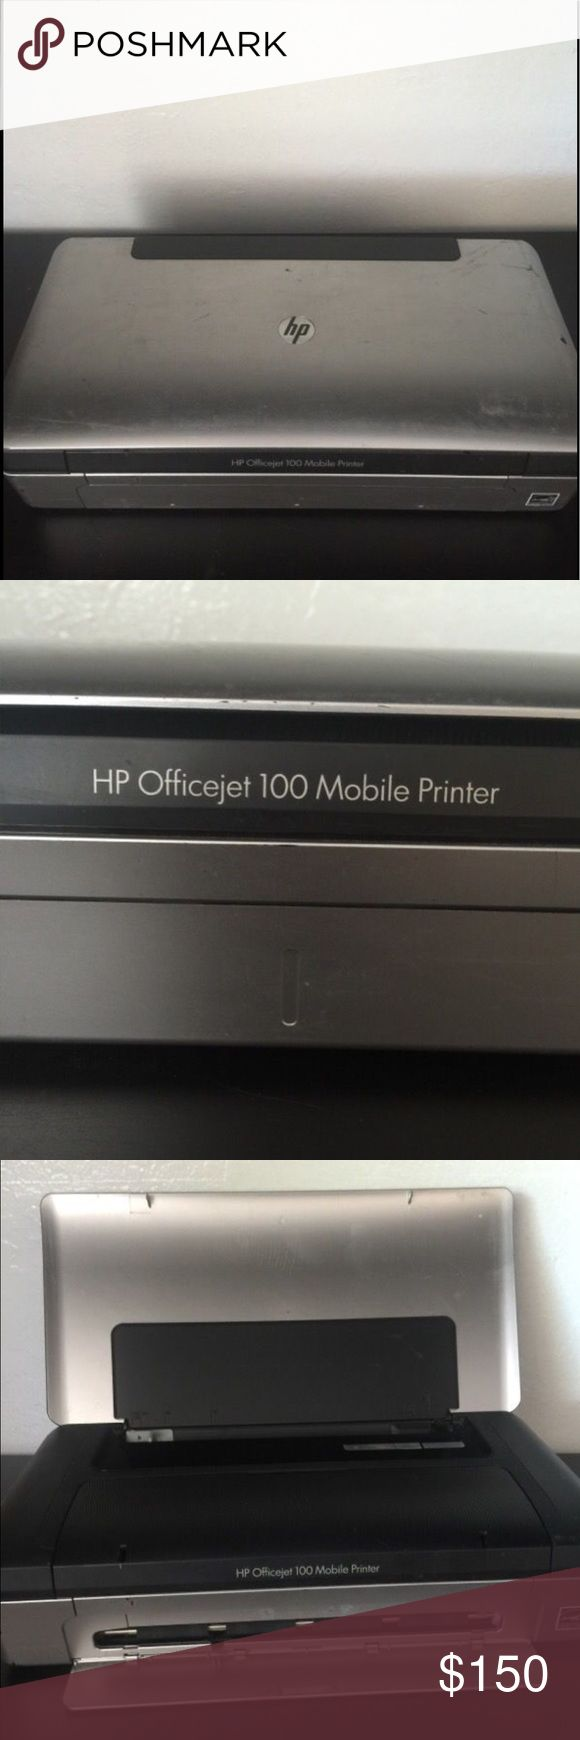 Portable/Mobile HP Officejet 100 Description Portable/Mobile HP Officejet 100 fairly new bought it a little over a year ago. Still has some ink . Comes with power cord. And software to install. Husband used for his business on busy days when he had no time to stop by the office. But no longer uses it.Still works great. COMES WITH INSTALLATION SOFTWARE   Thank you for your interest:) HP Other